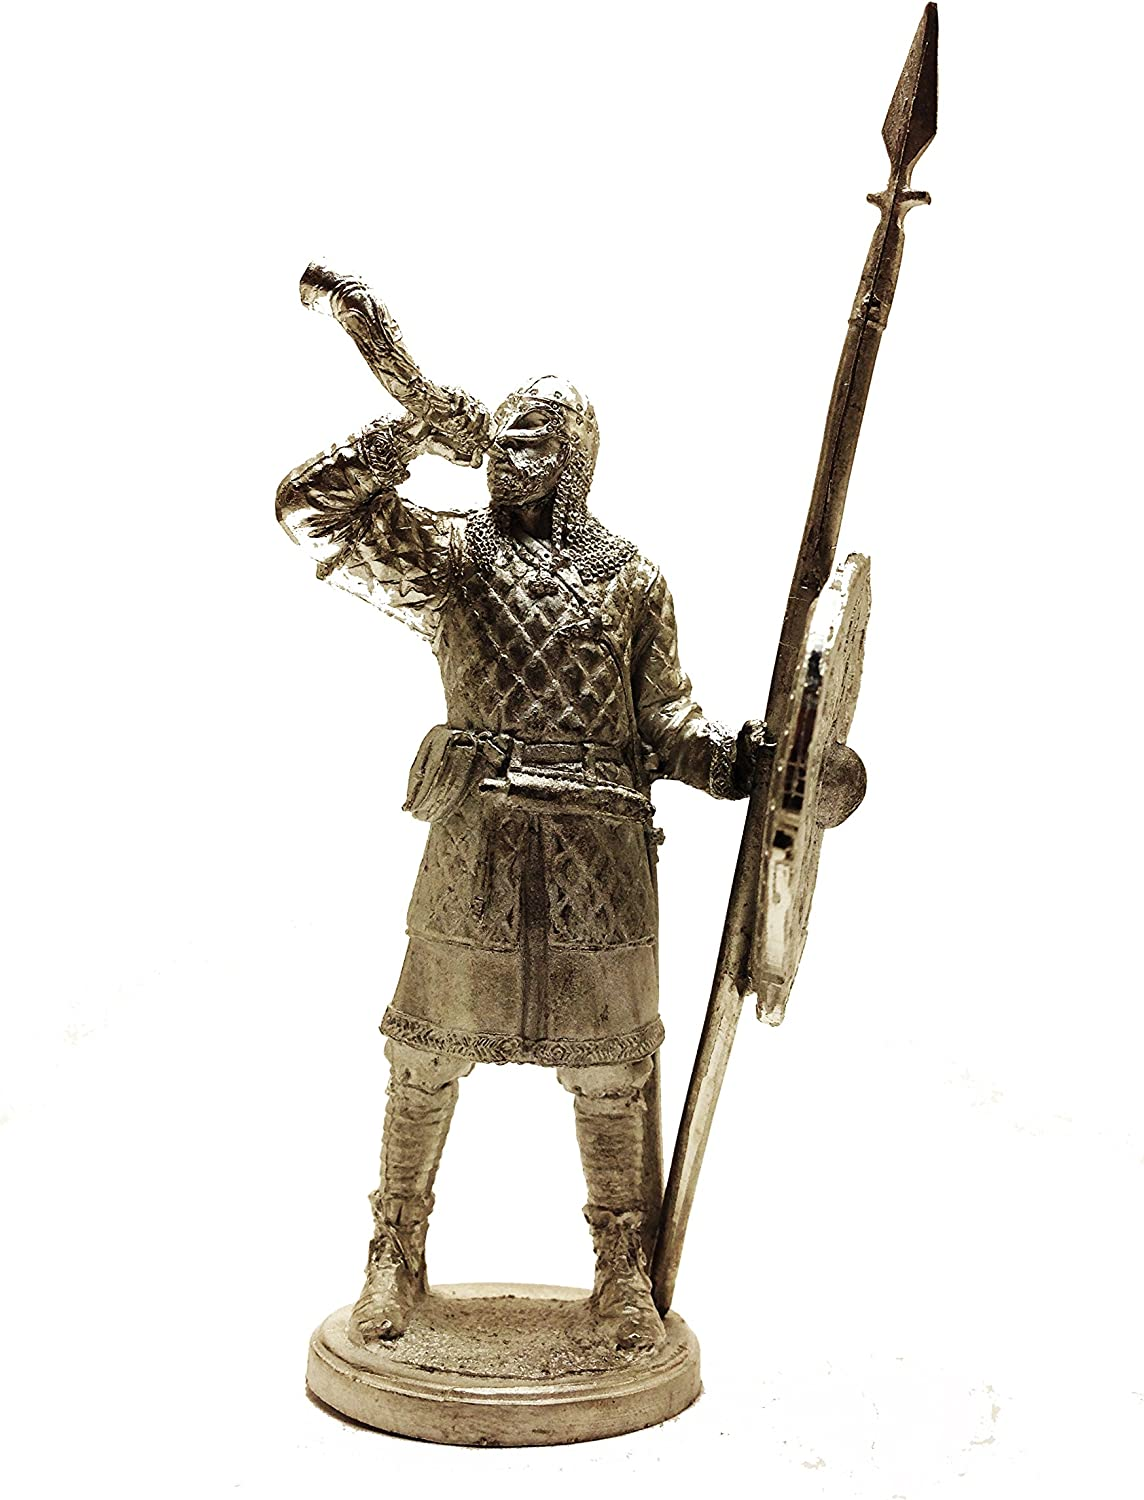 Military-Historical Miniatures Viking 9-10 Century Tin Metal 54mm Action Figures Toy Soldiers Size 1 32 Scale for Home Décor Accents Collectible Figurines Item  C5223